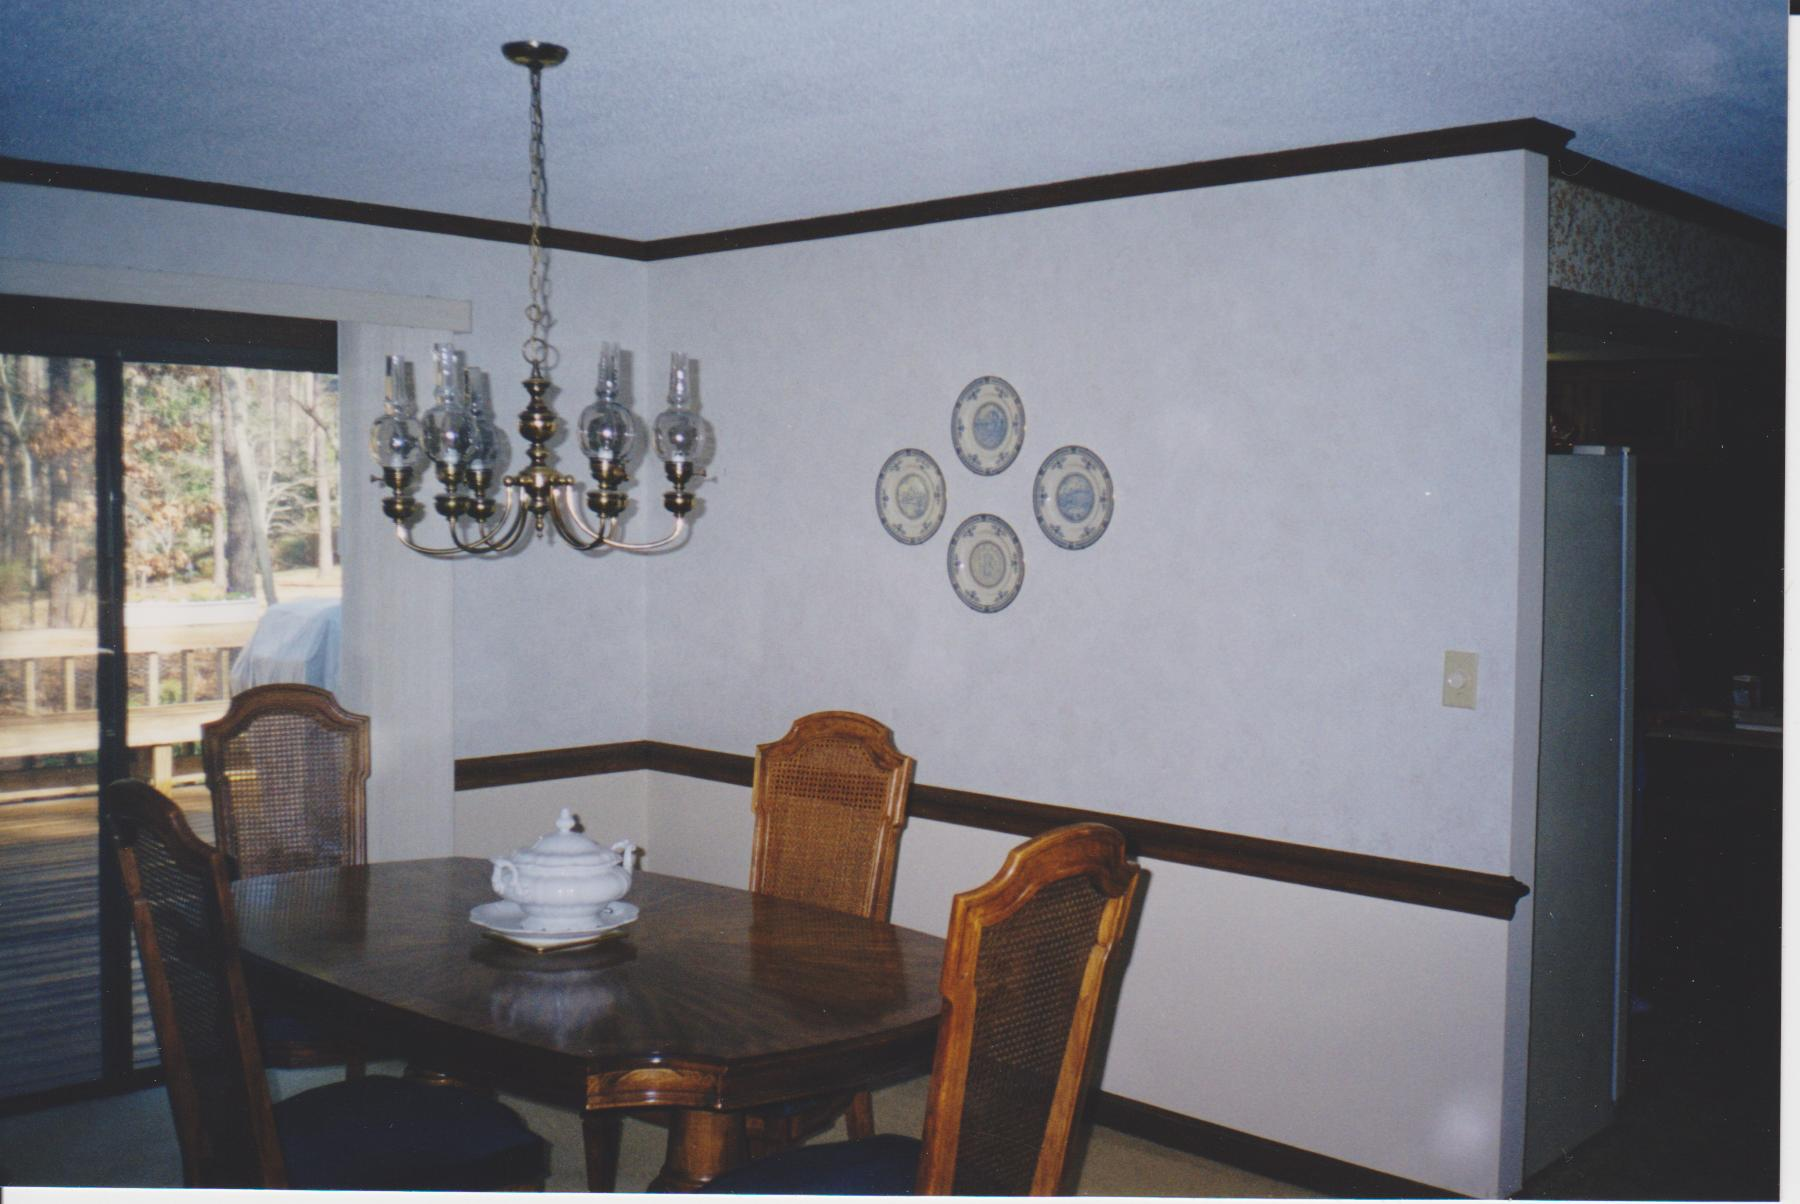 Find painting services in raleigh nc painters near you - Interior design services near me ...